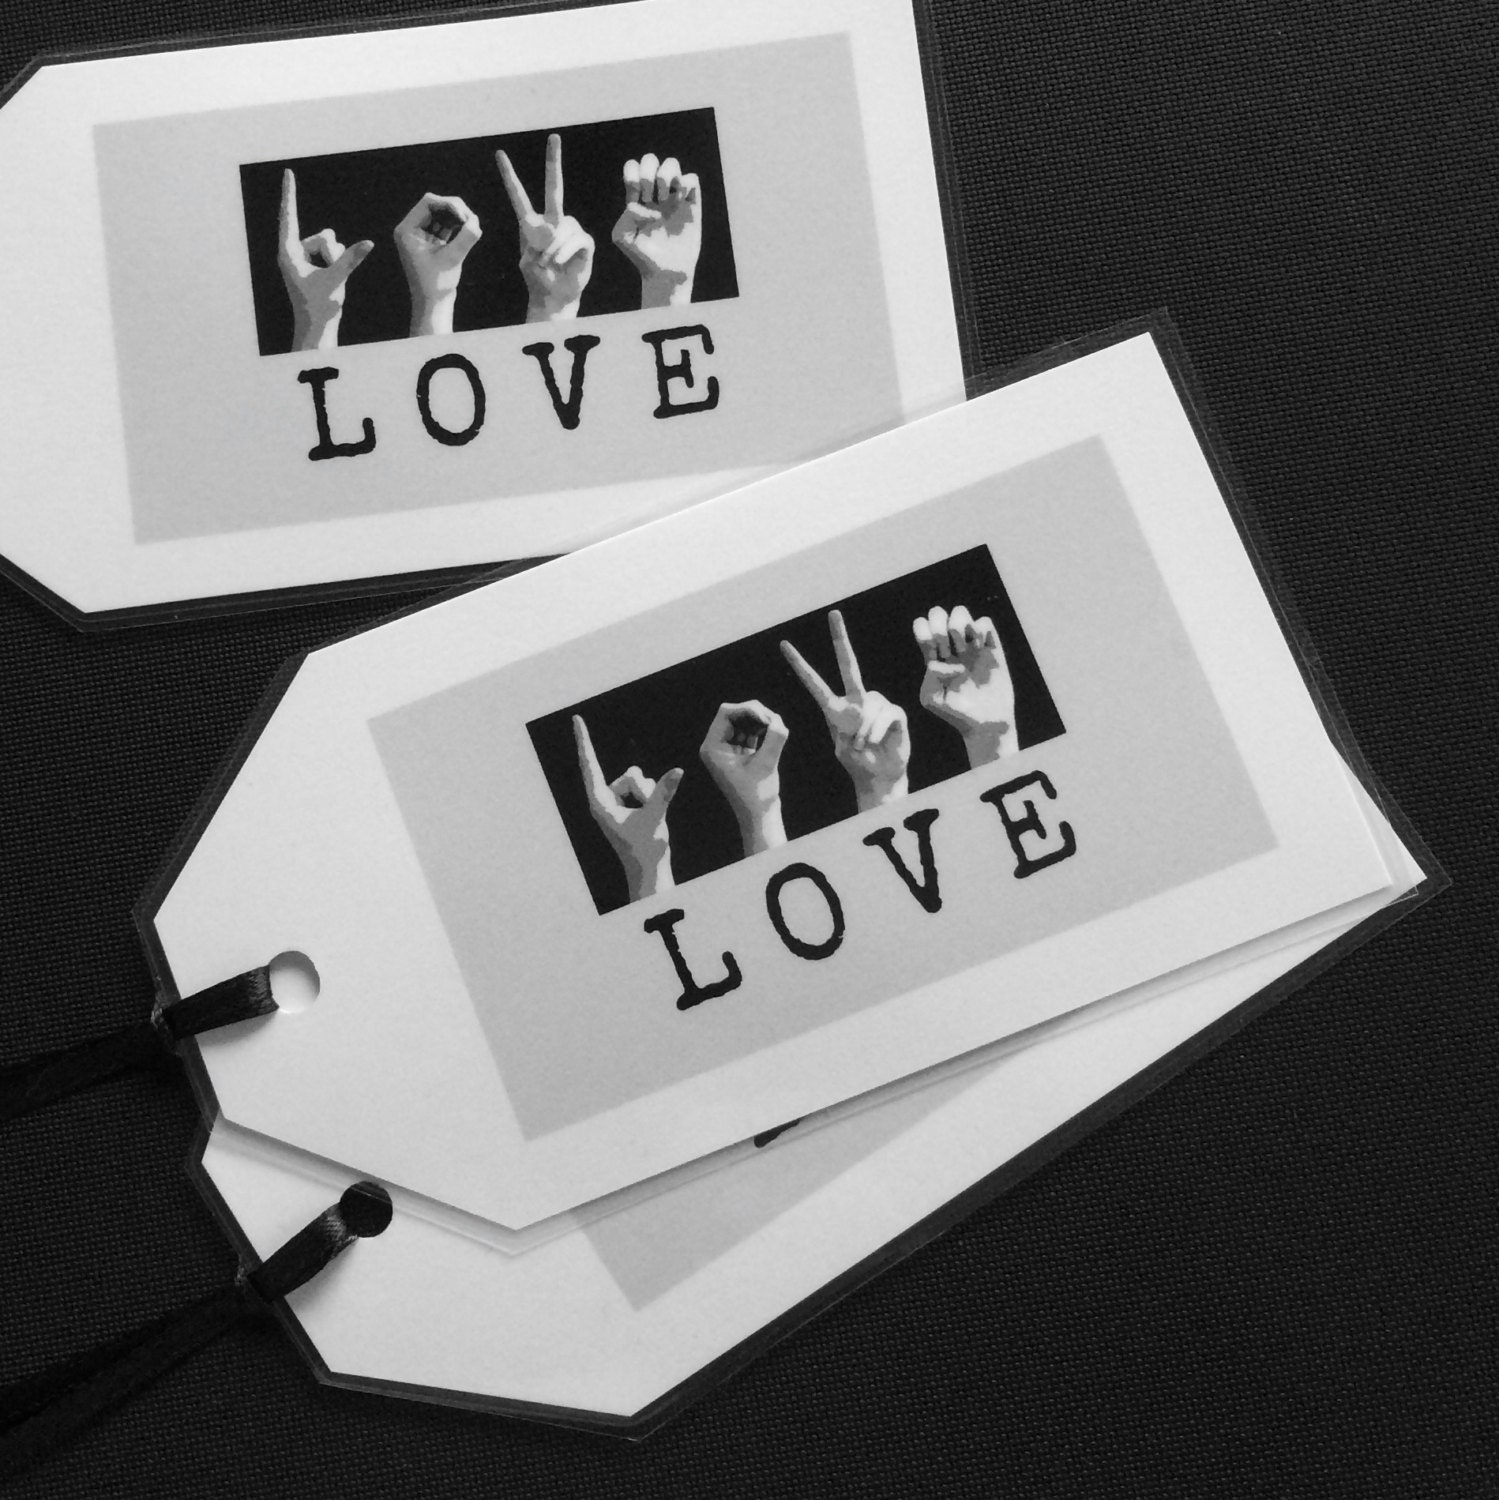 asl love bookmark inspirational quotes buy and get one